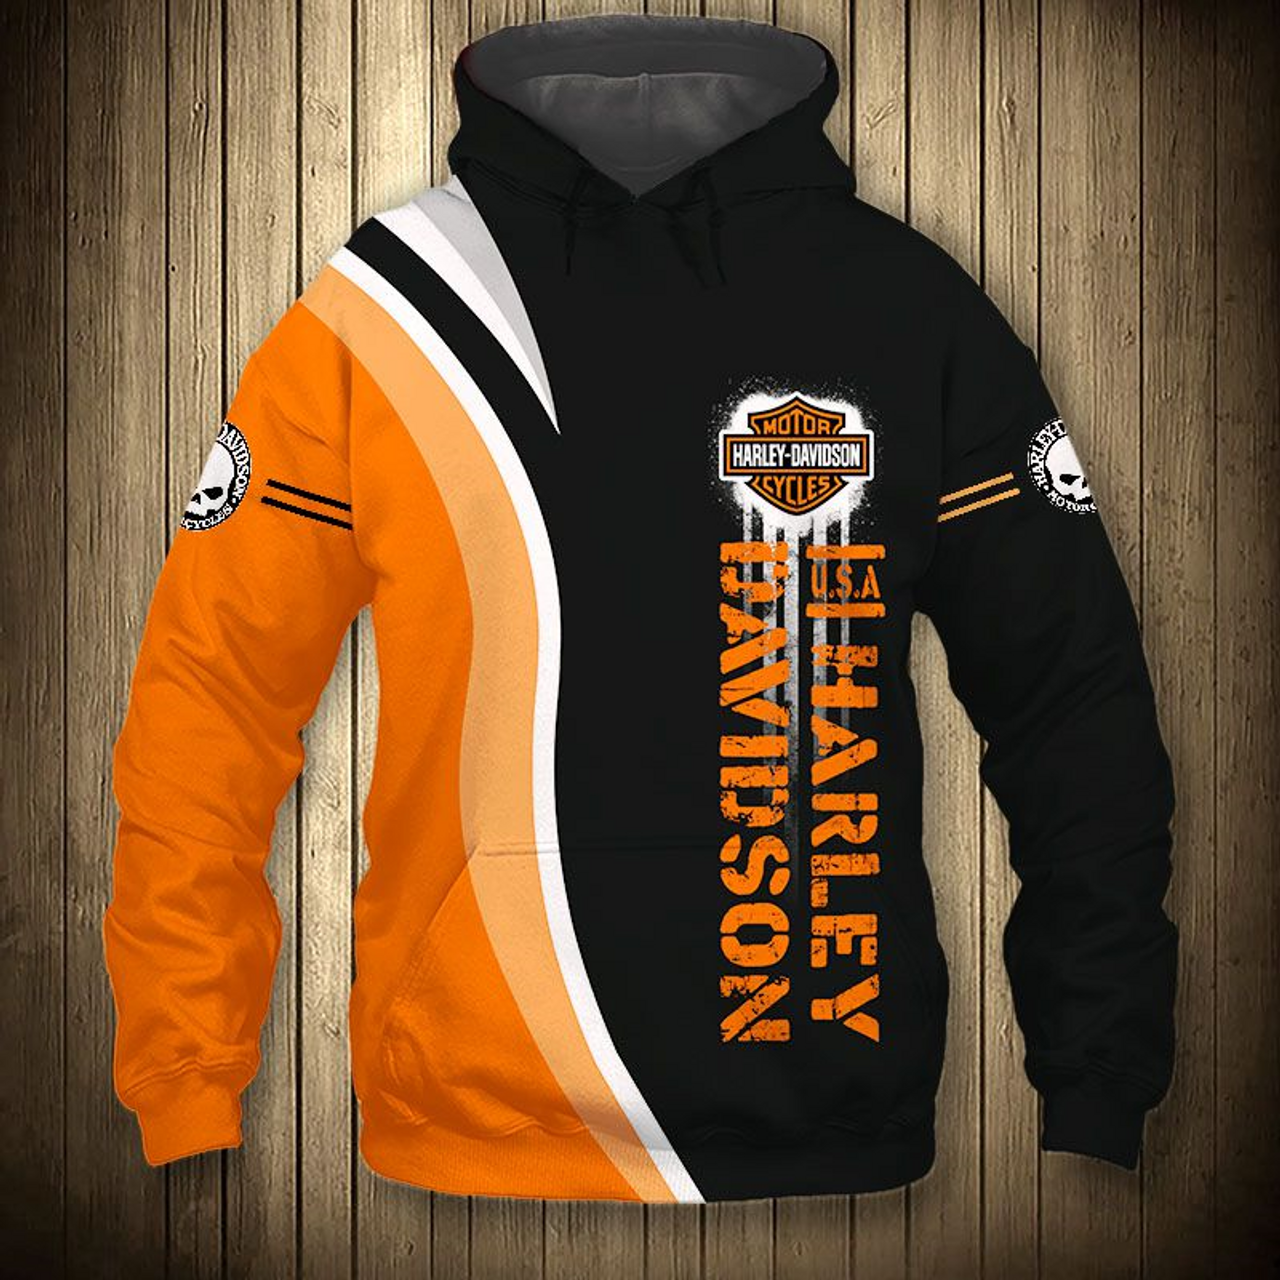 **(OFFICIAL-HARLEY-DAVIDSON-MOTORCYCLE-BIKER-PULLOVER-HOODIES/CUSTOM-DETAILED-3D-GRAPHIC-PRINTED-DOUBLE-SIDED-DESIGN/CLASSIC-OFFICIAL-CUSTOM-HARLEY-LOGOS & OFFICIAL-HARLEY-BLACK & ORANGE-COLORS/WARM-PREMIUM-HARLEY-BIKERS-PULLOVER-HOODIE)**